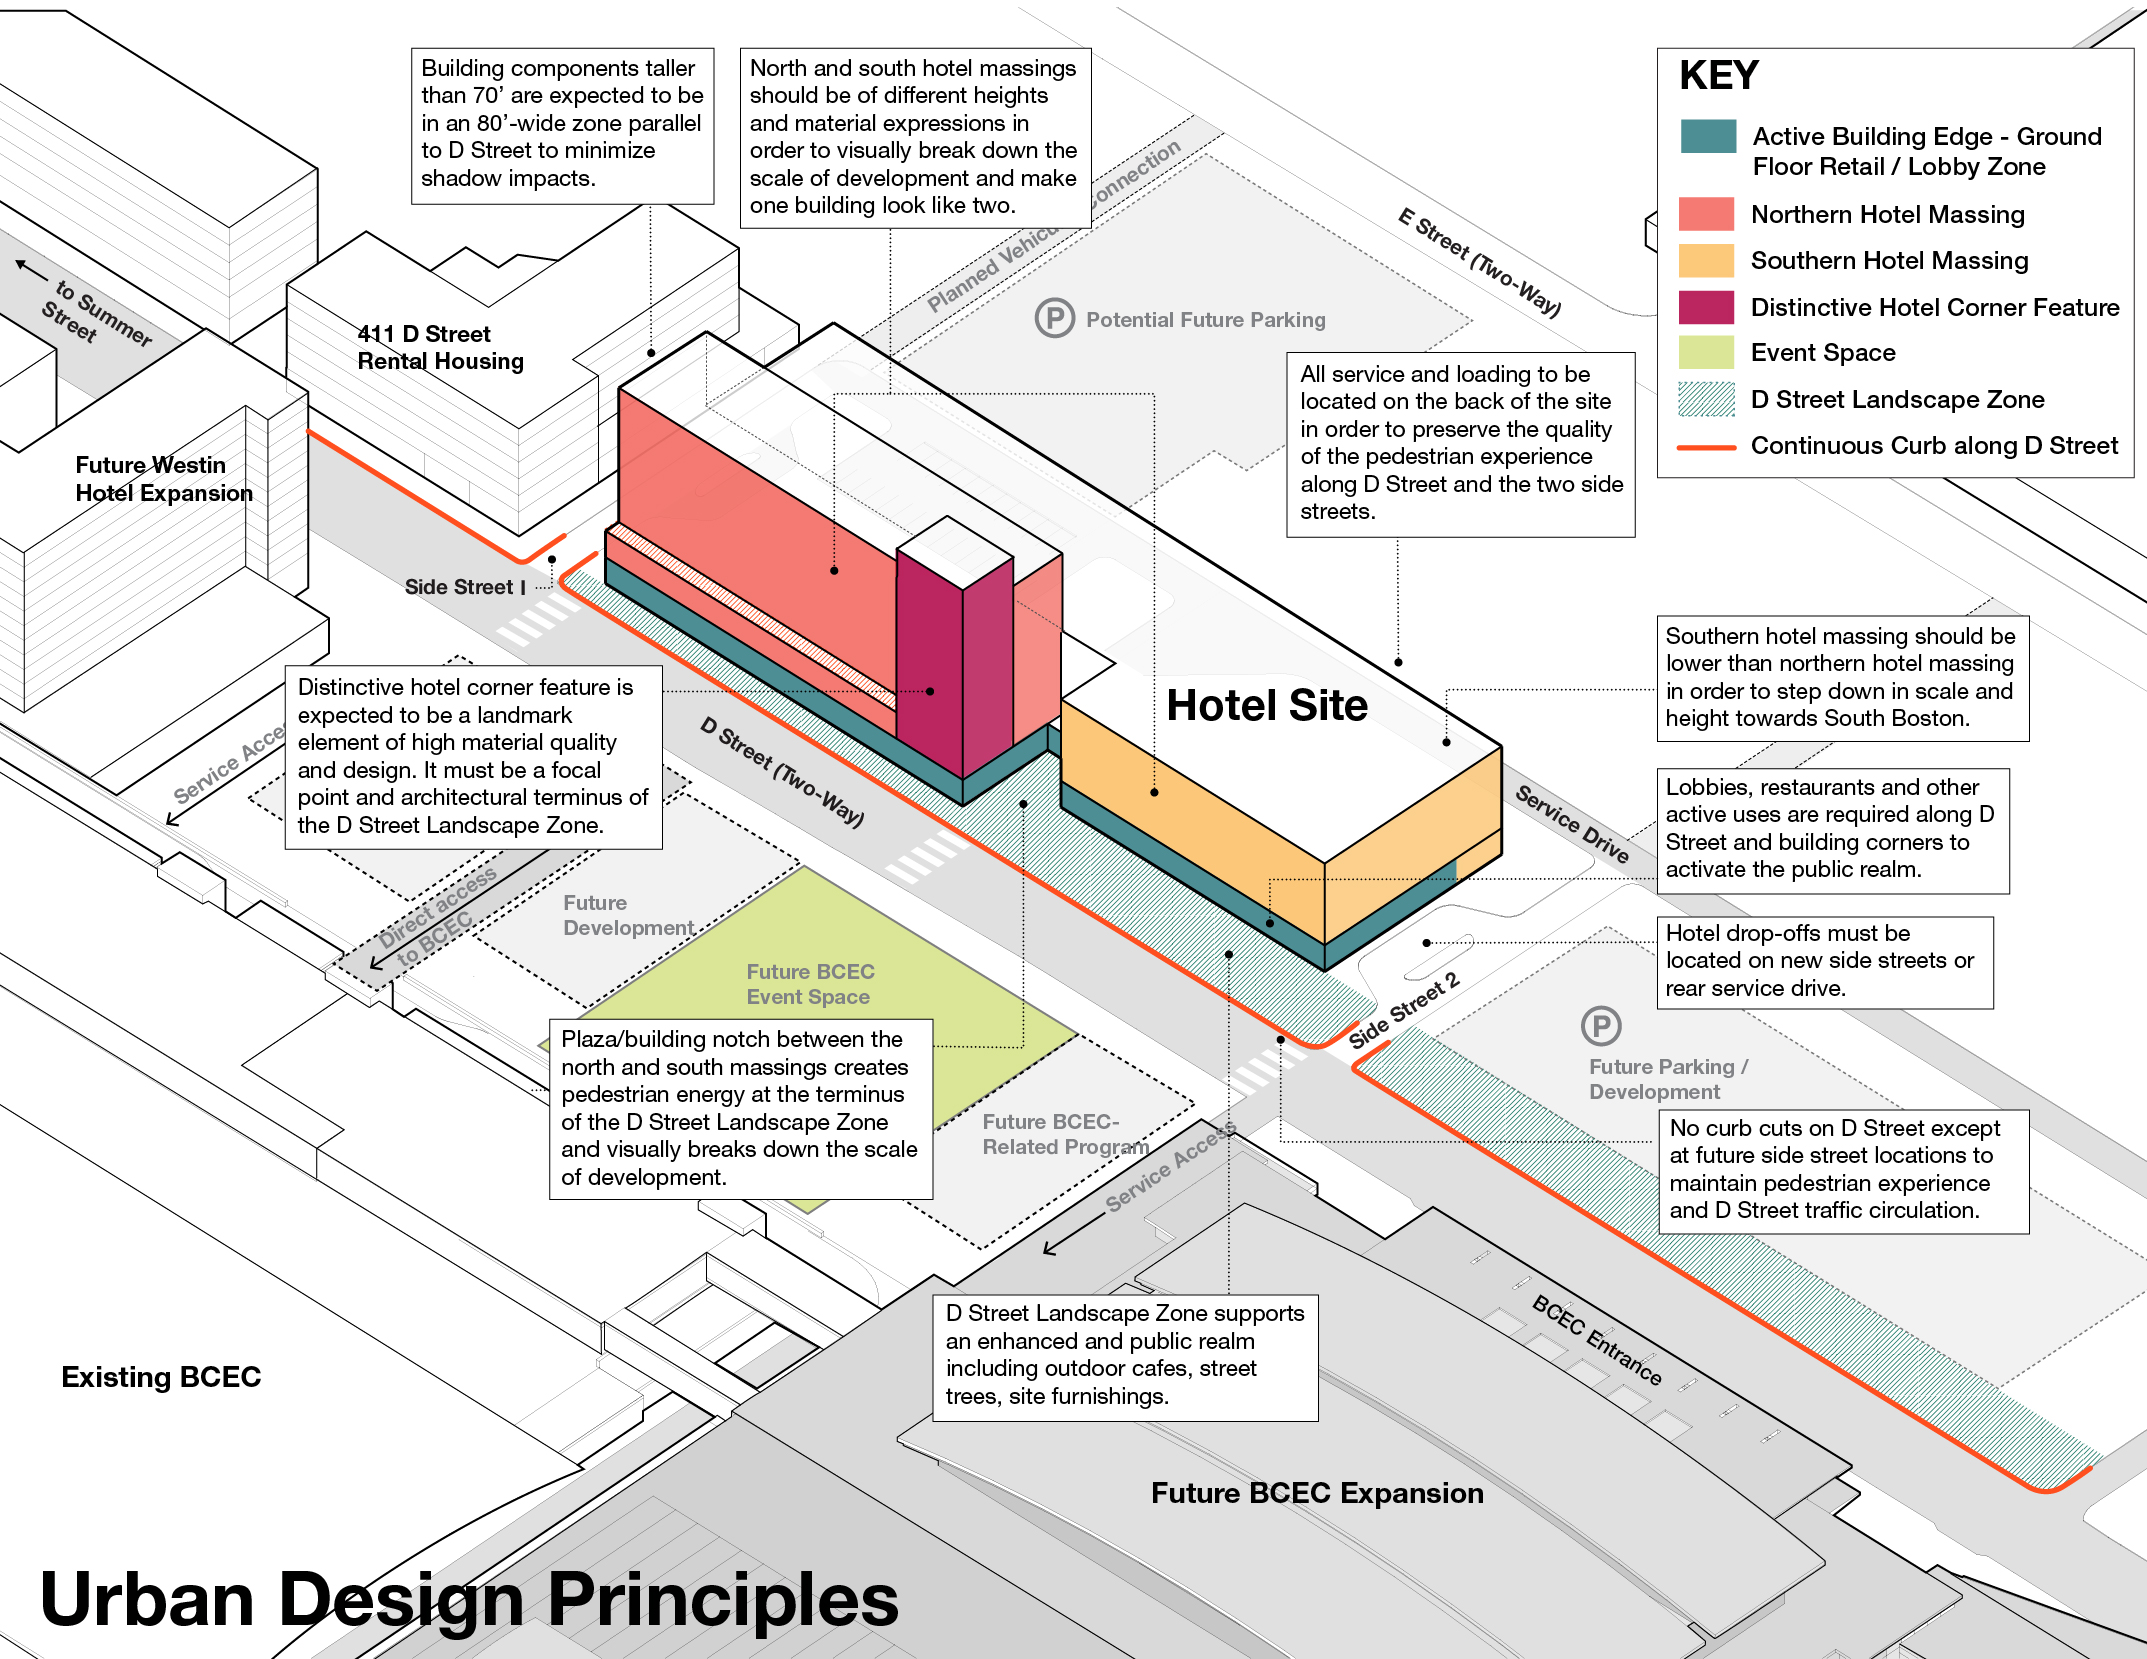 Boston convention exhibition center master plan and hotel for Boutique hotel design guidelines